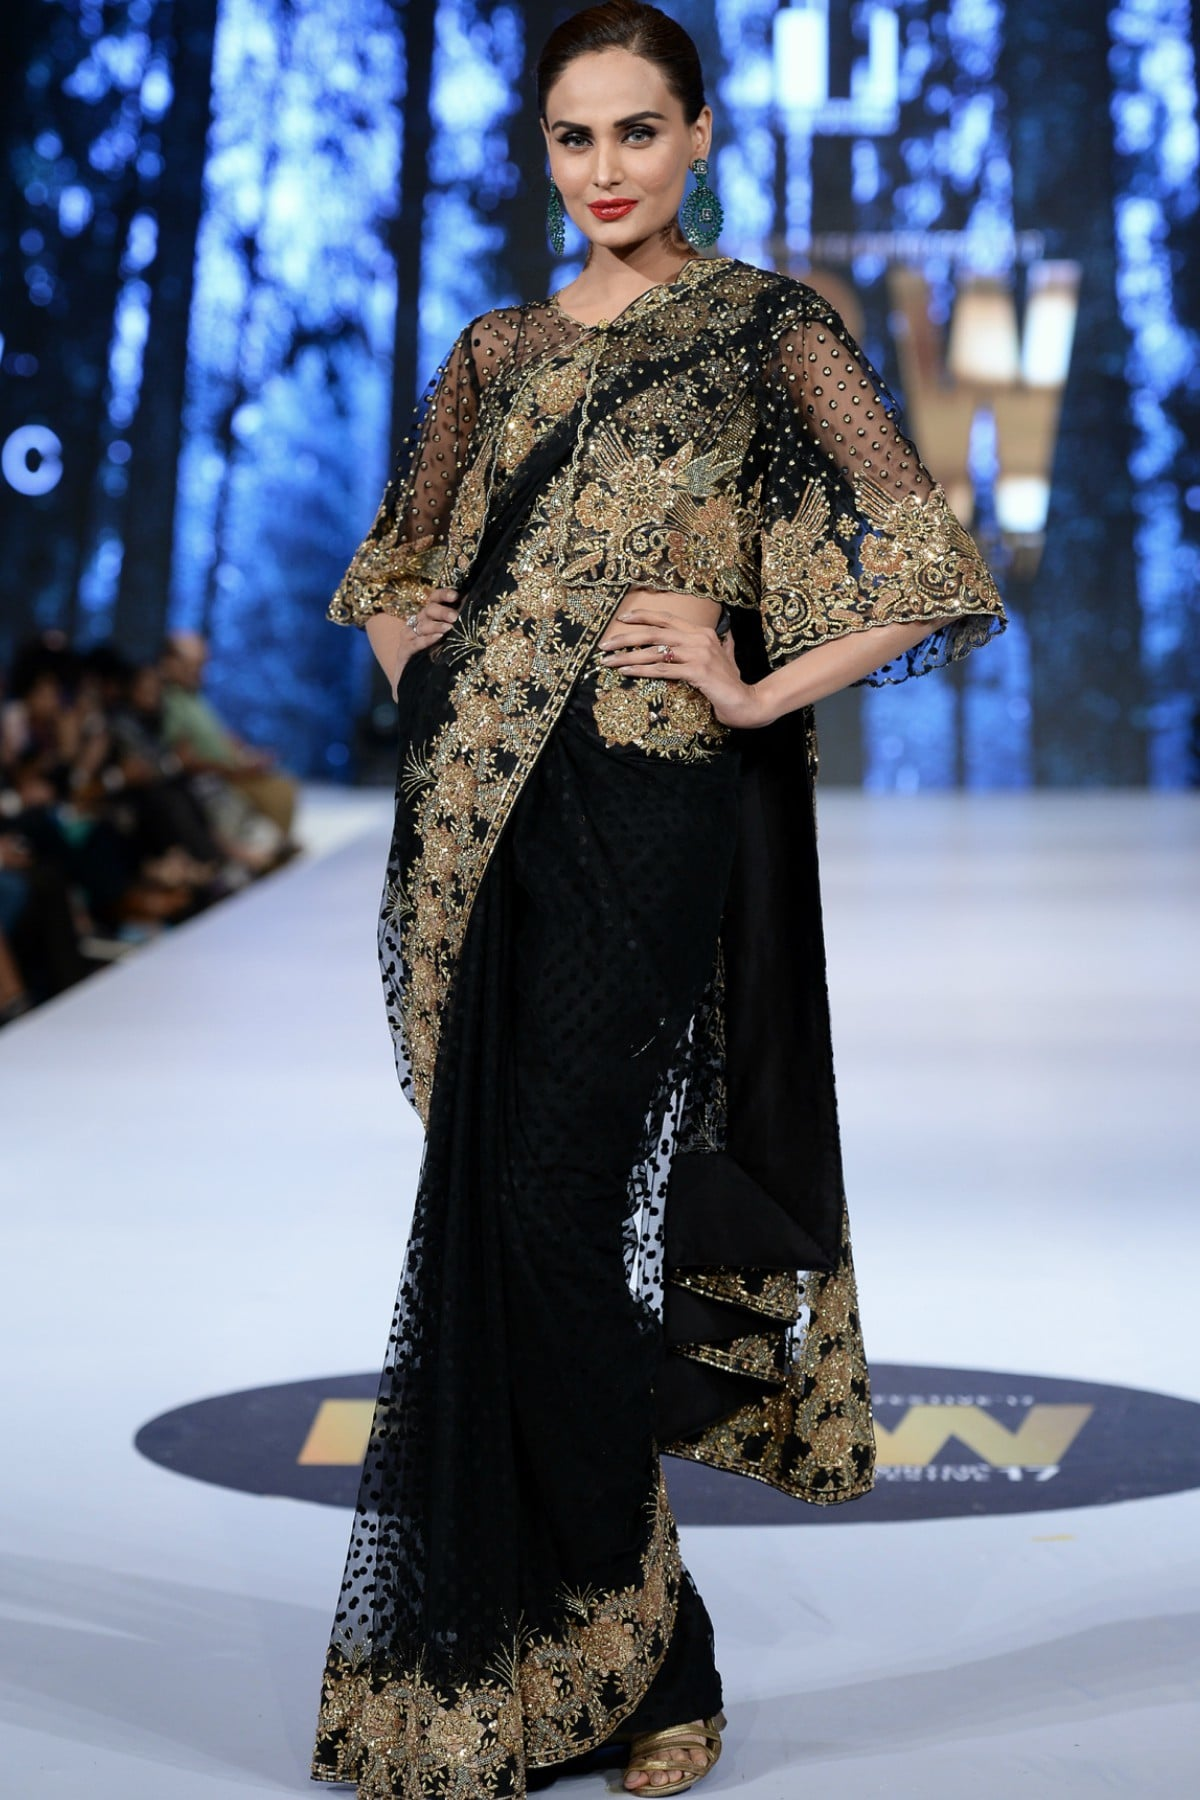 This sari, modelled by Mehreen Syed, was a definite statement maker